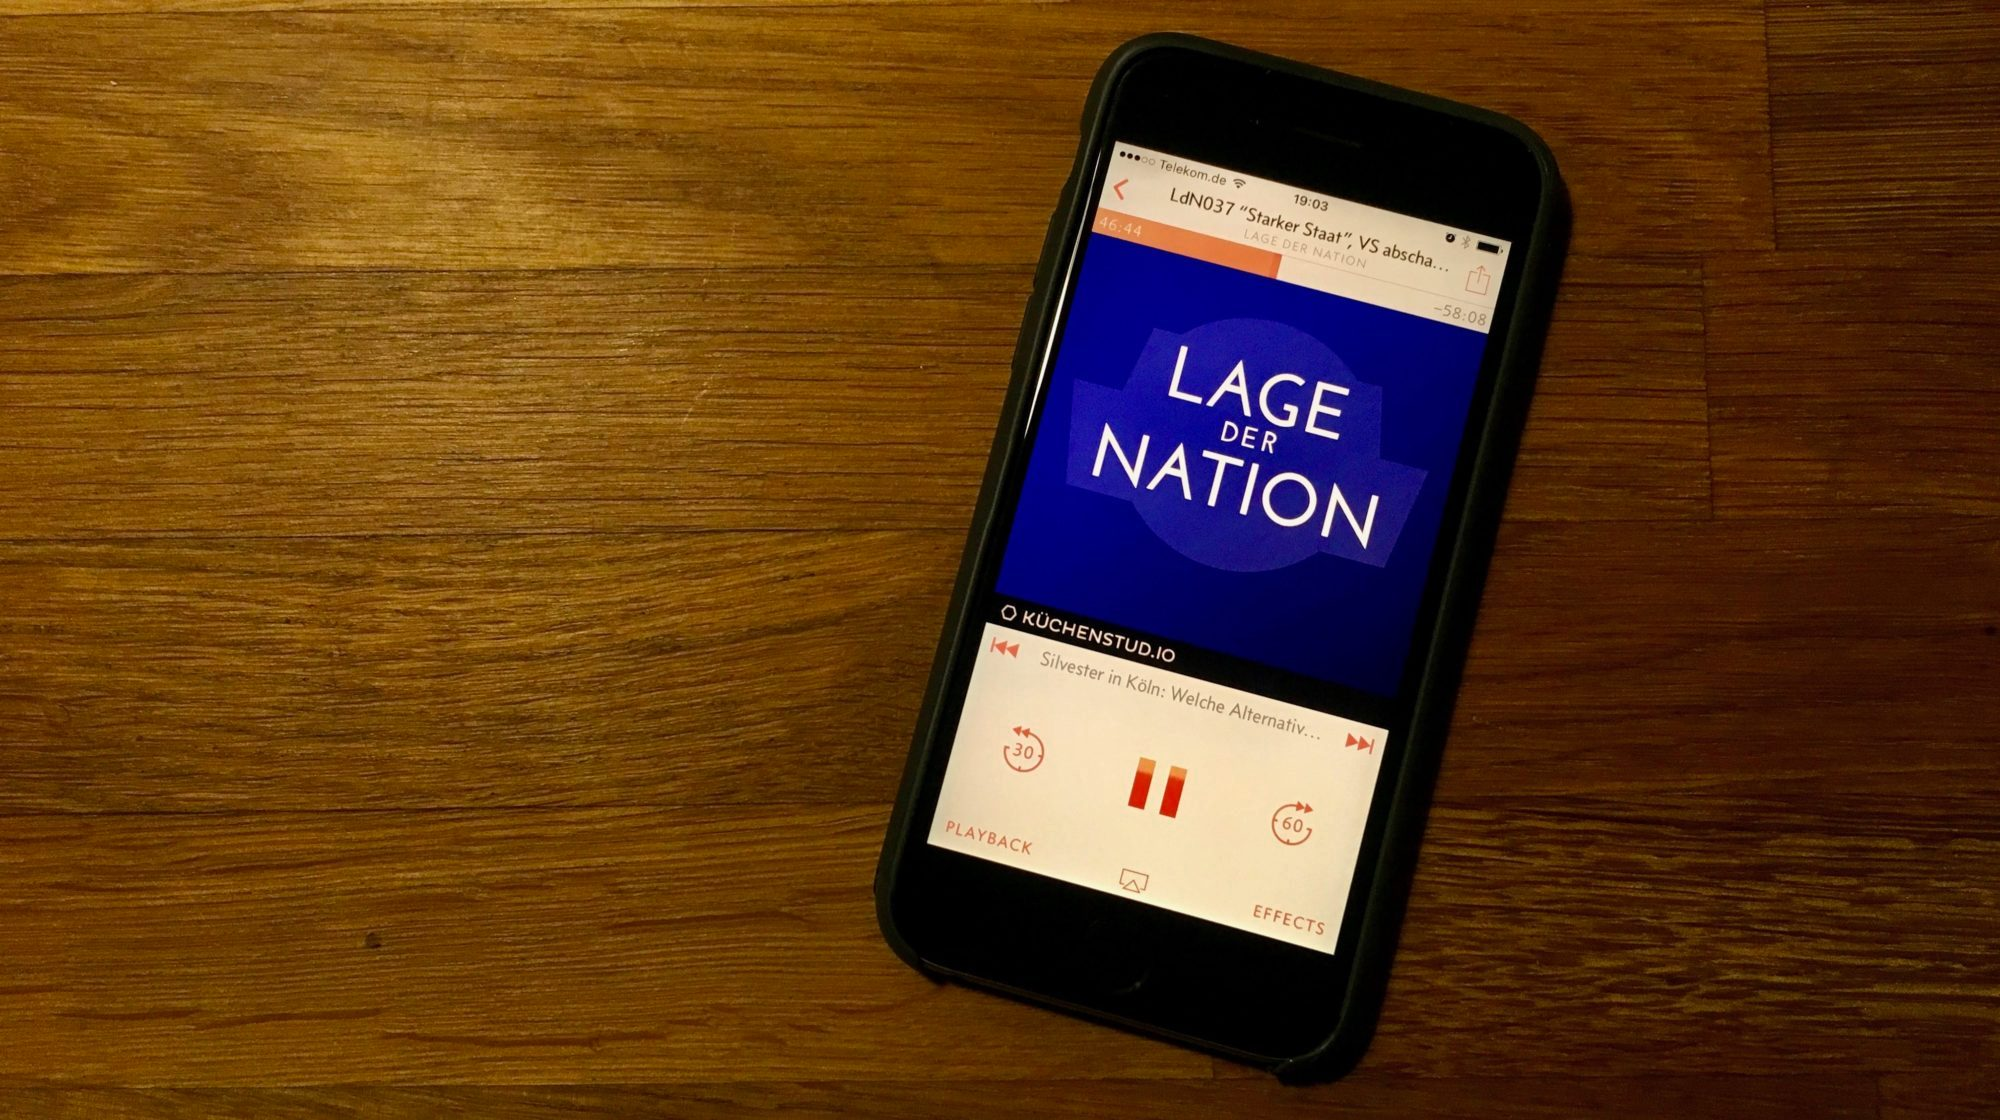 iphone mit podcast lage der nation